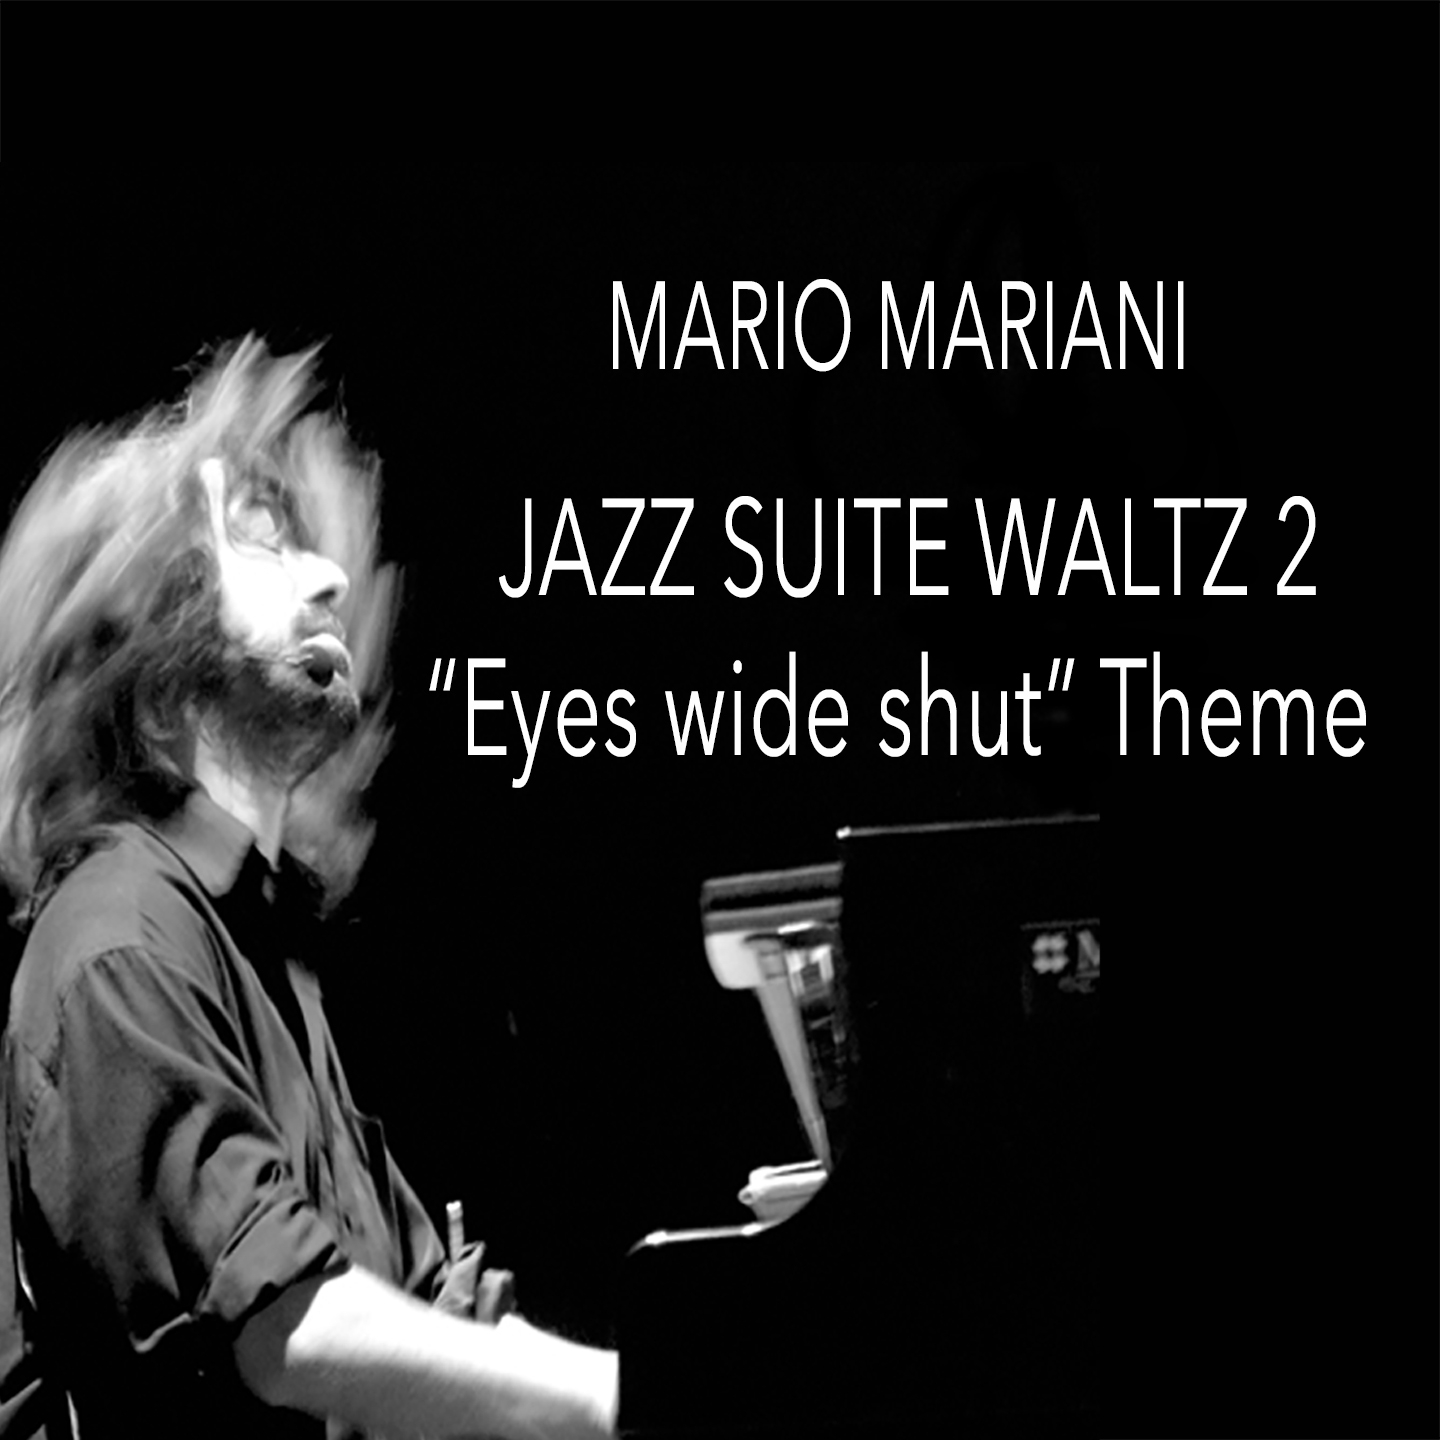 "Suite for Jazz Orchestra No. 2: Waltz ( From Stanley Kubrick's ""Eyes Wide Shut"", Arr. for Piano )"